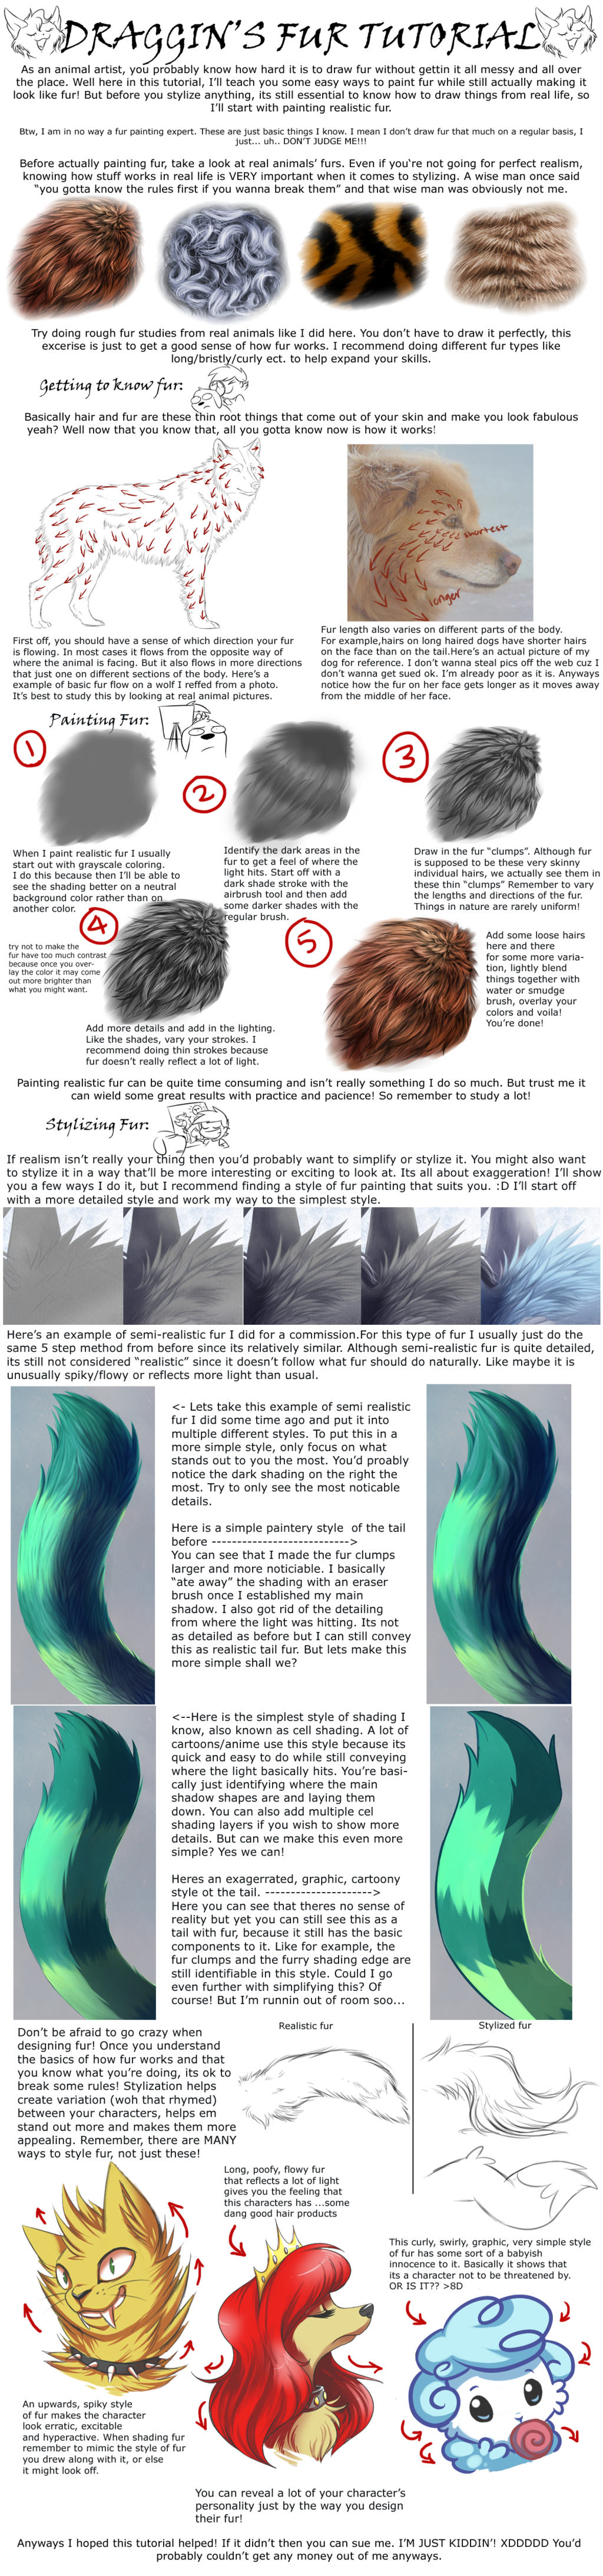 Painting and Stylizing Fur Tutorial by DragginCatdeviantartcom